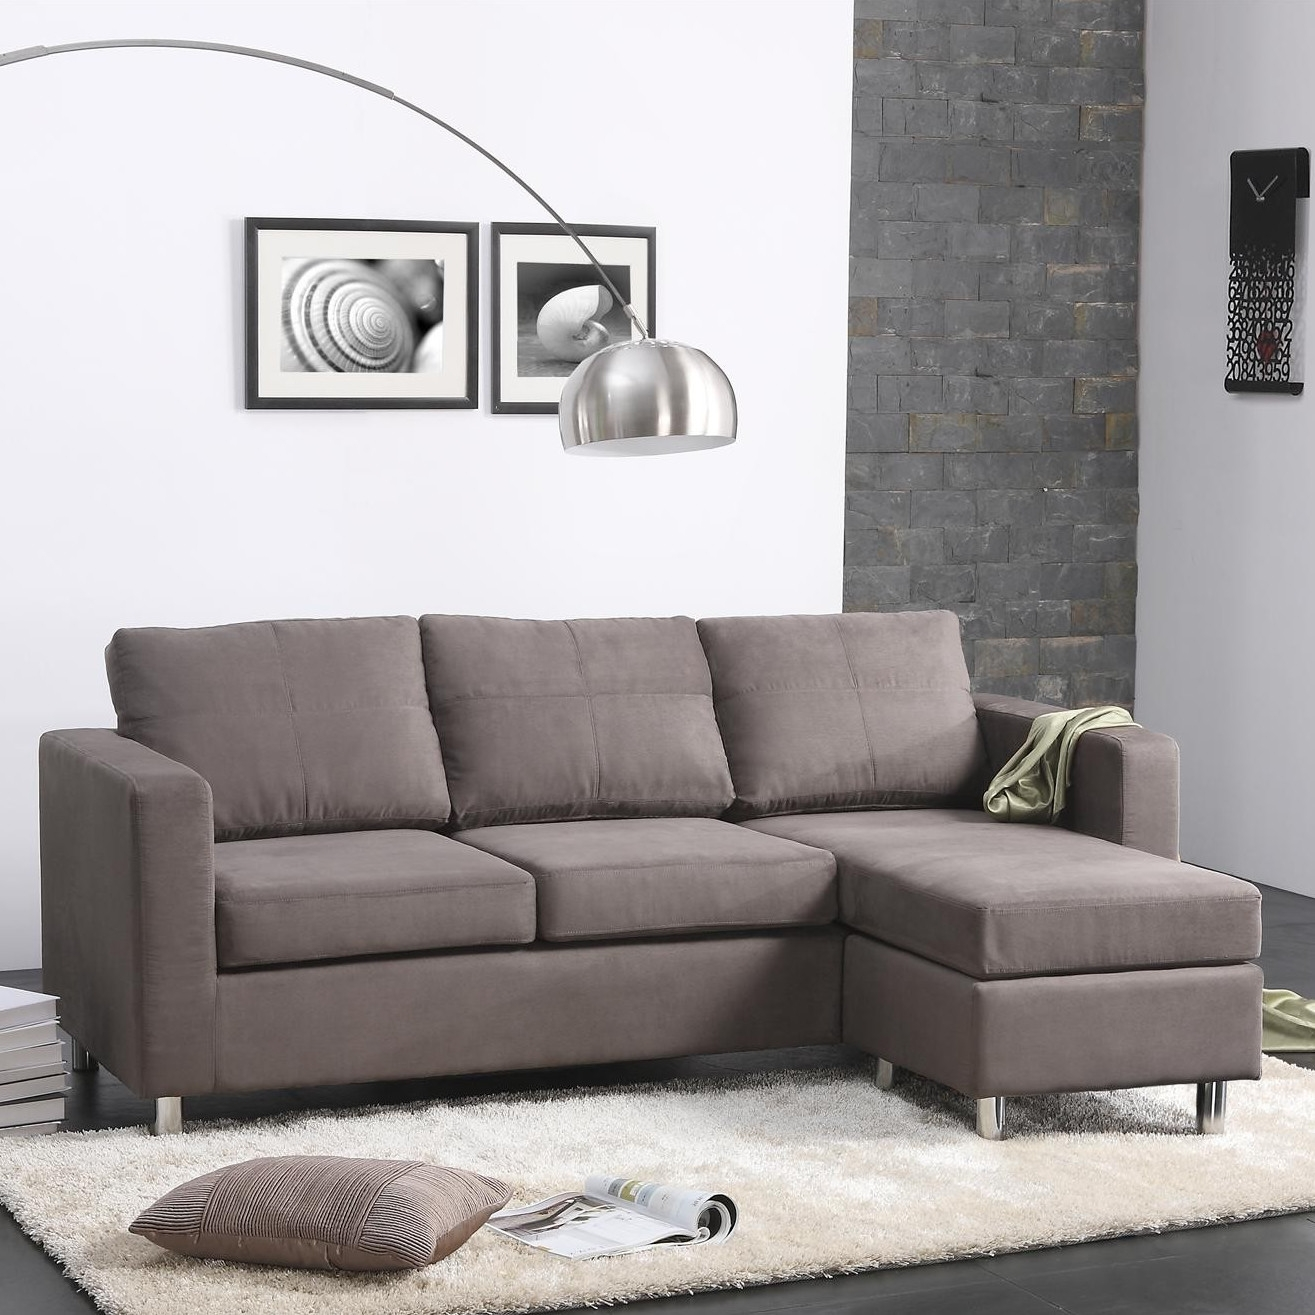 Small Spaces Configurable Sectional Sofa Roselawnlutheran Regarding Small Sectional Sofa (View 10 of 15)